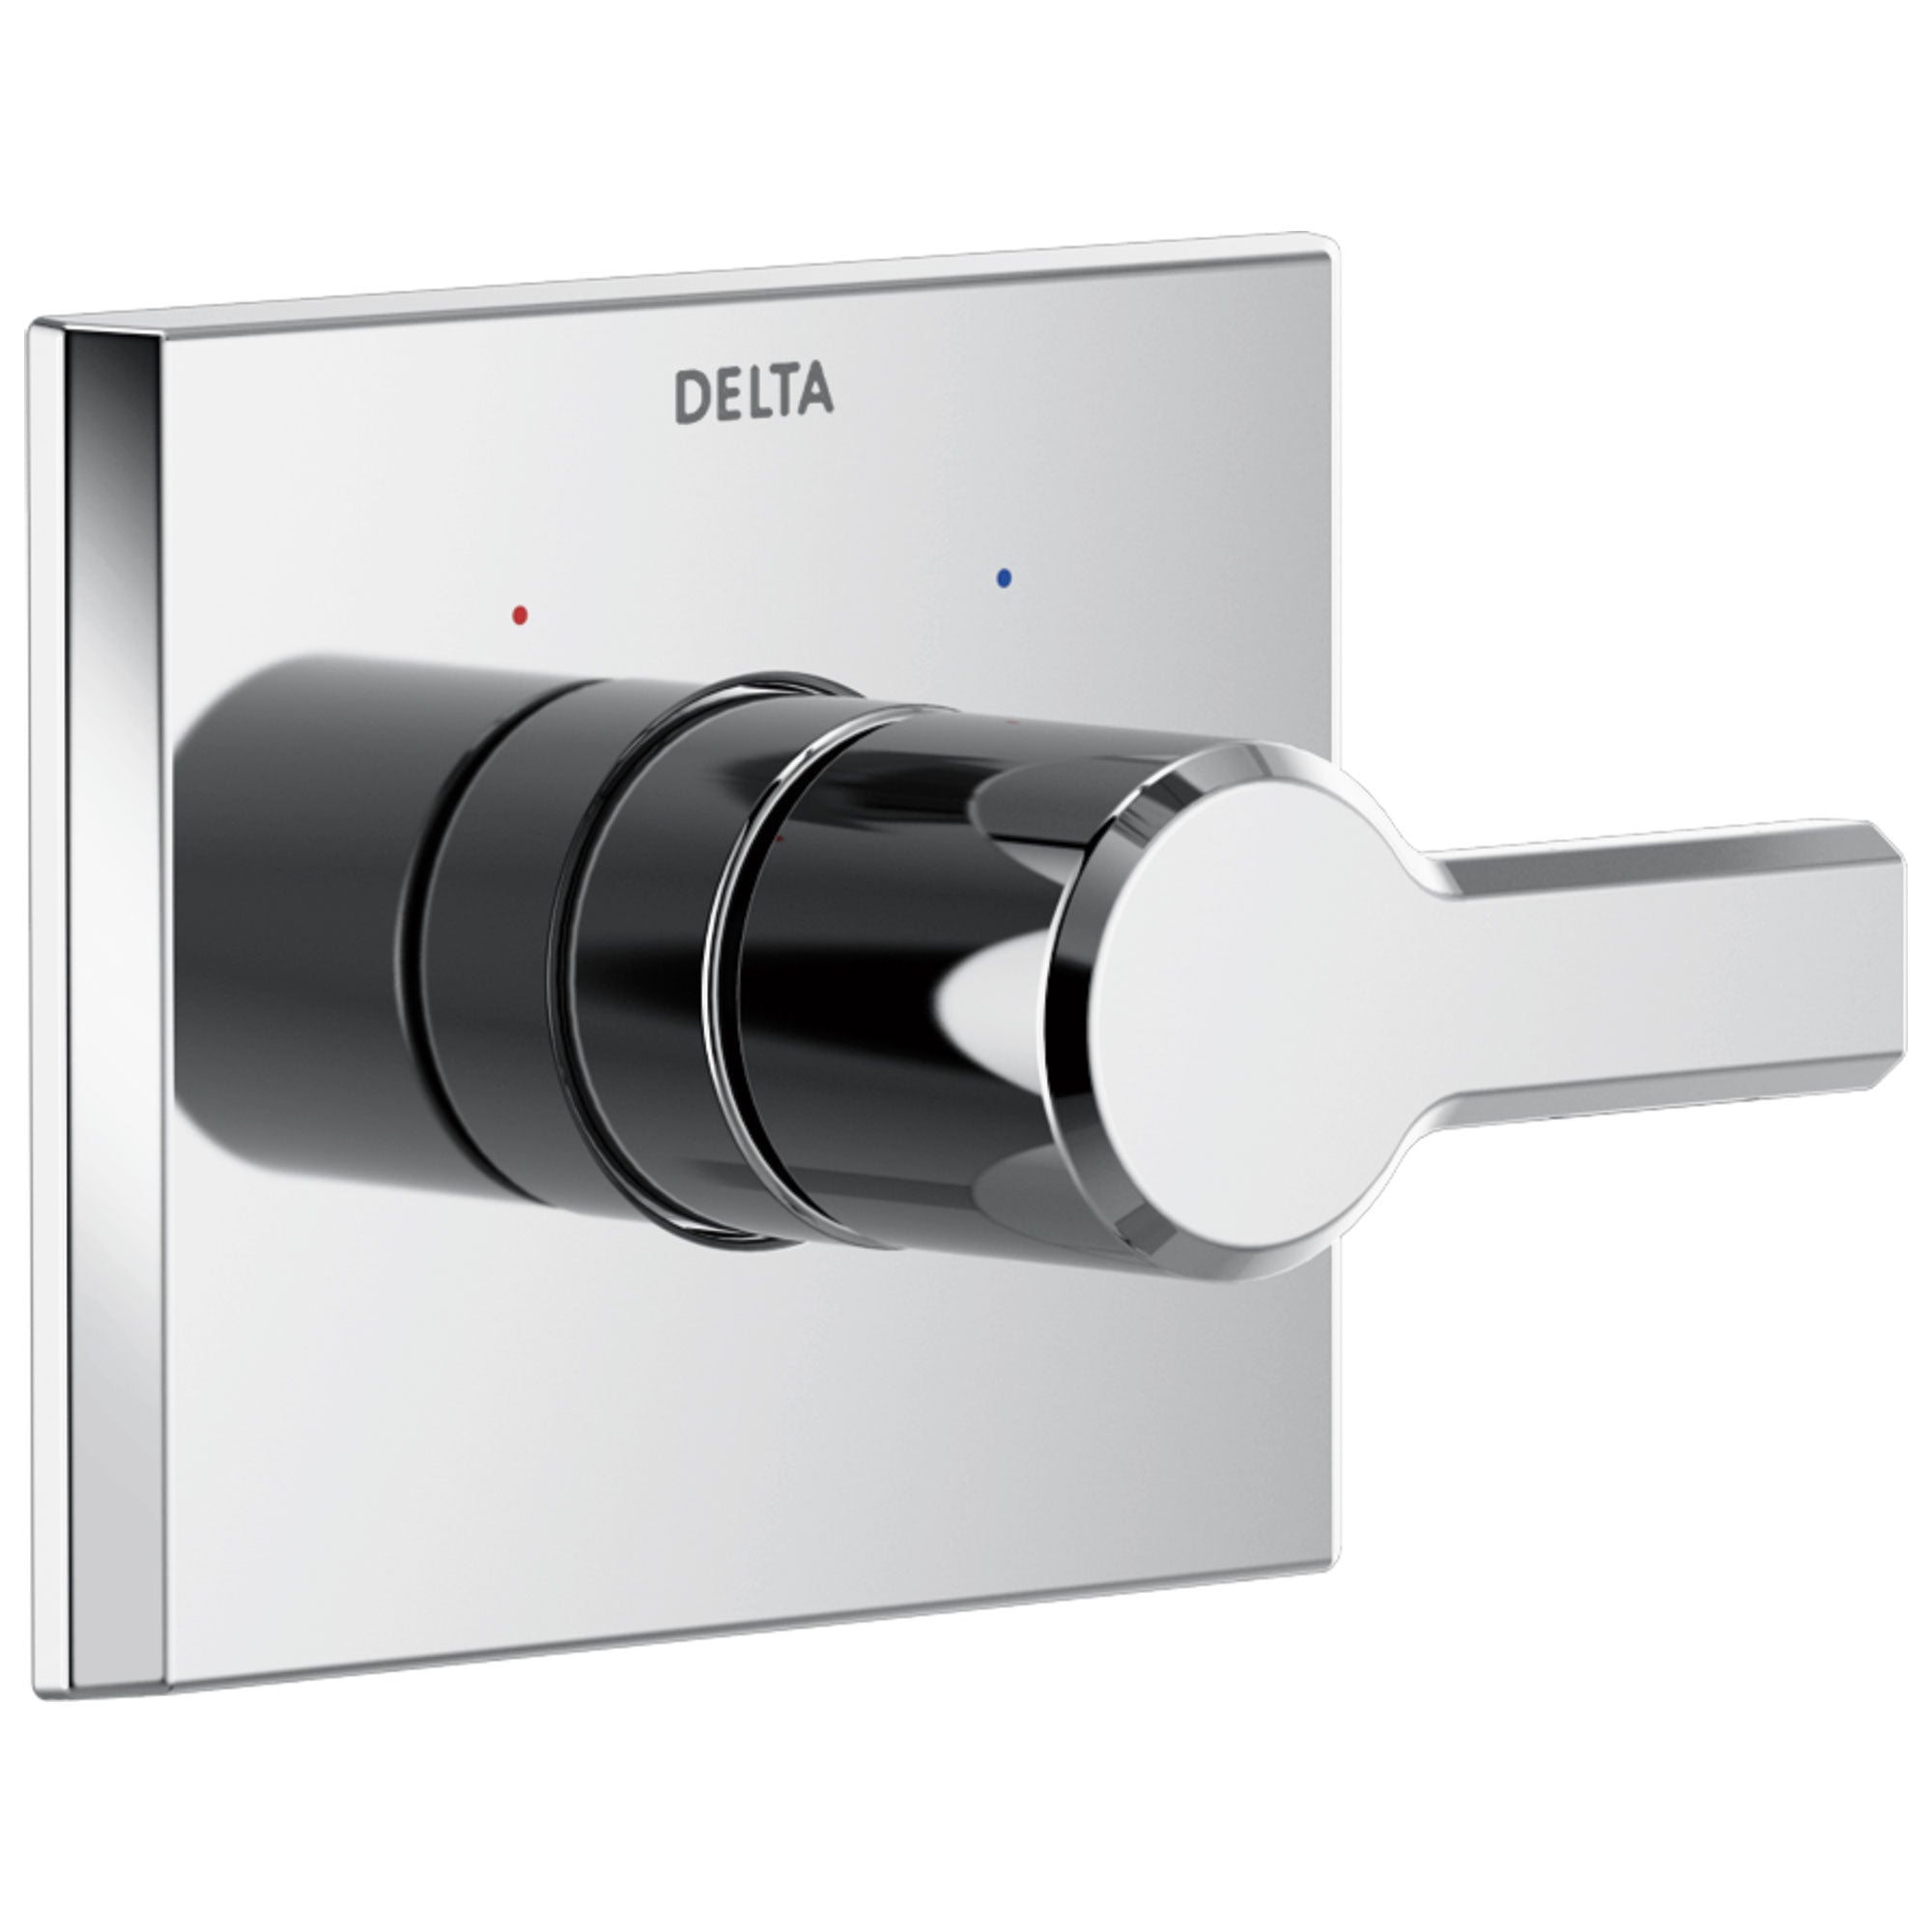 Delta Pivotal Chrome Finish Monitor 14 Series Single Handle Shower Faucet Control Only Includes Cartridge and Valve with Stops D3532V